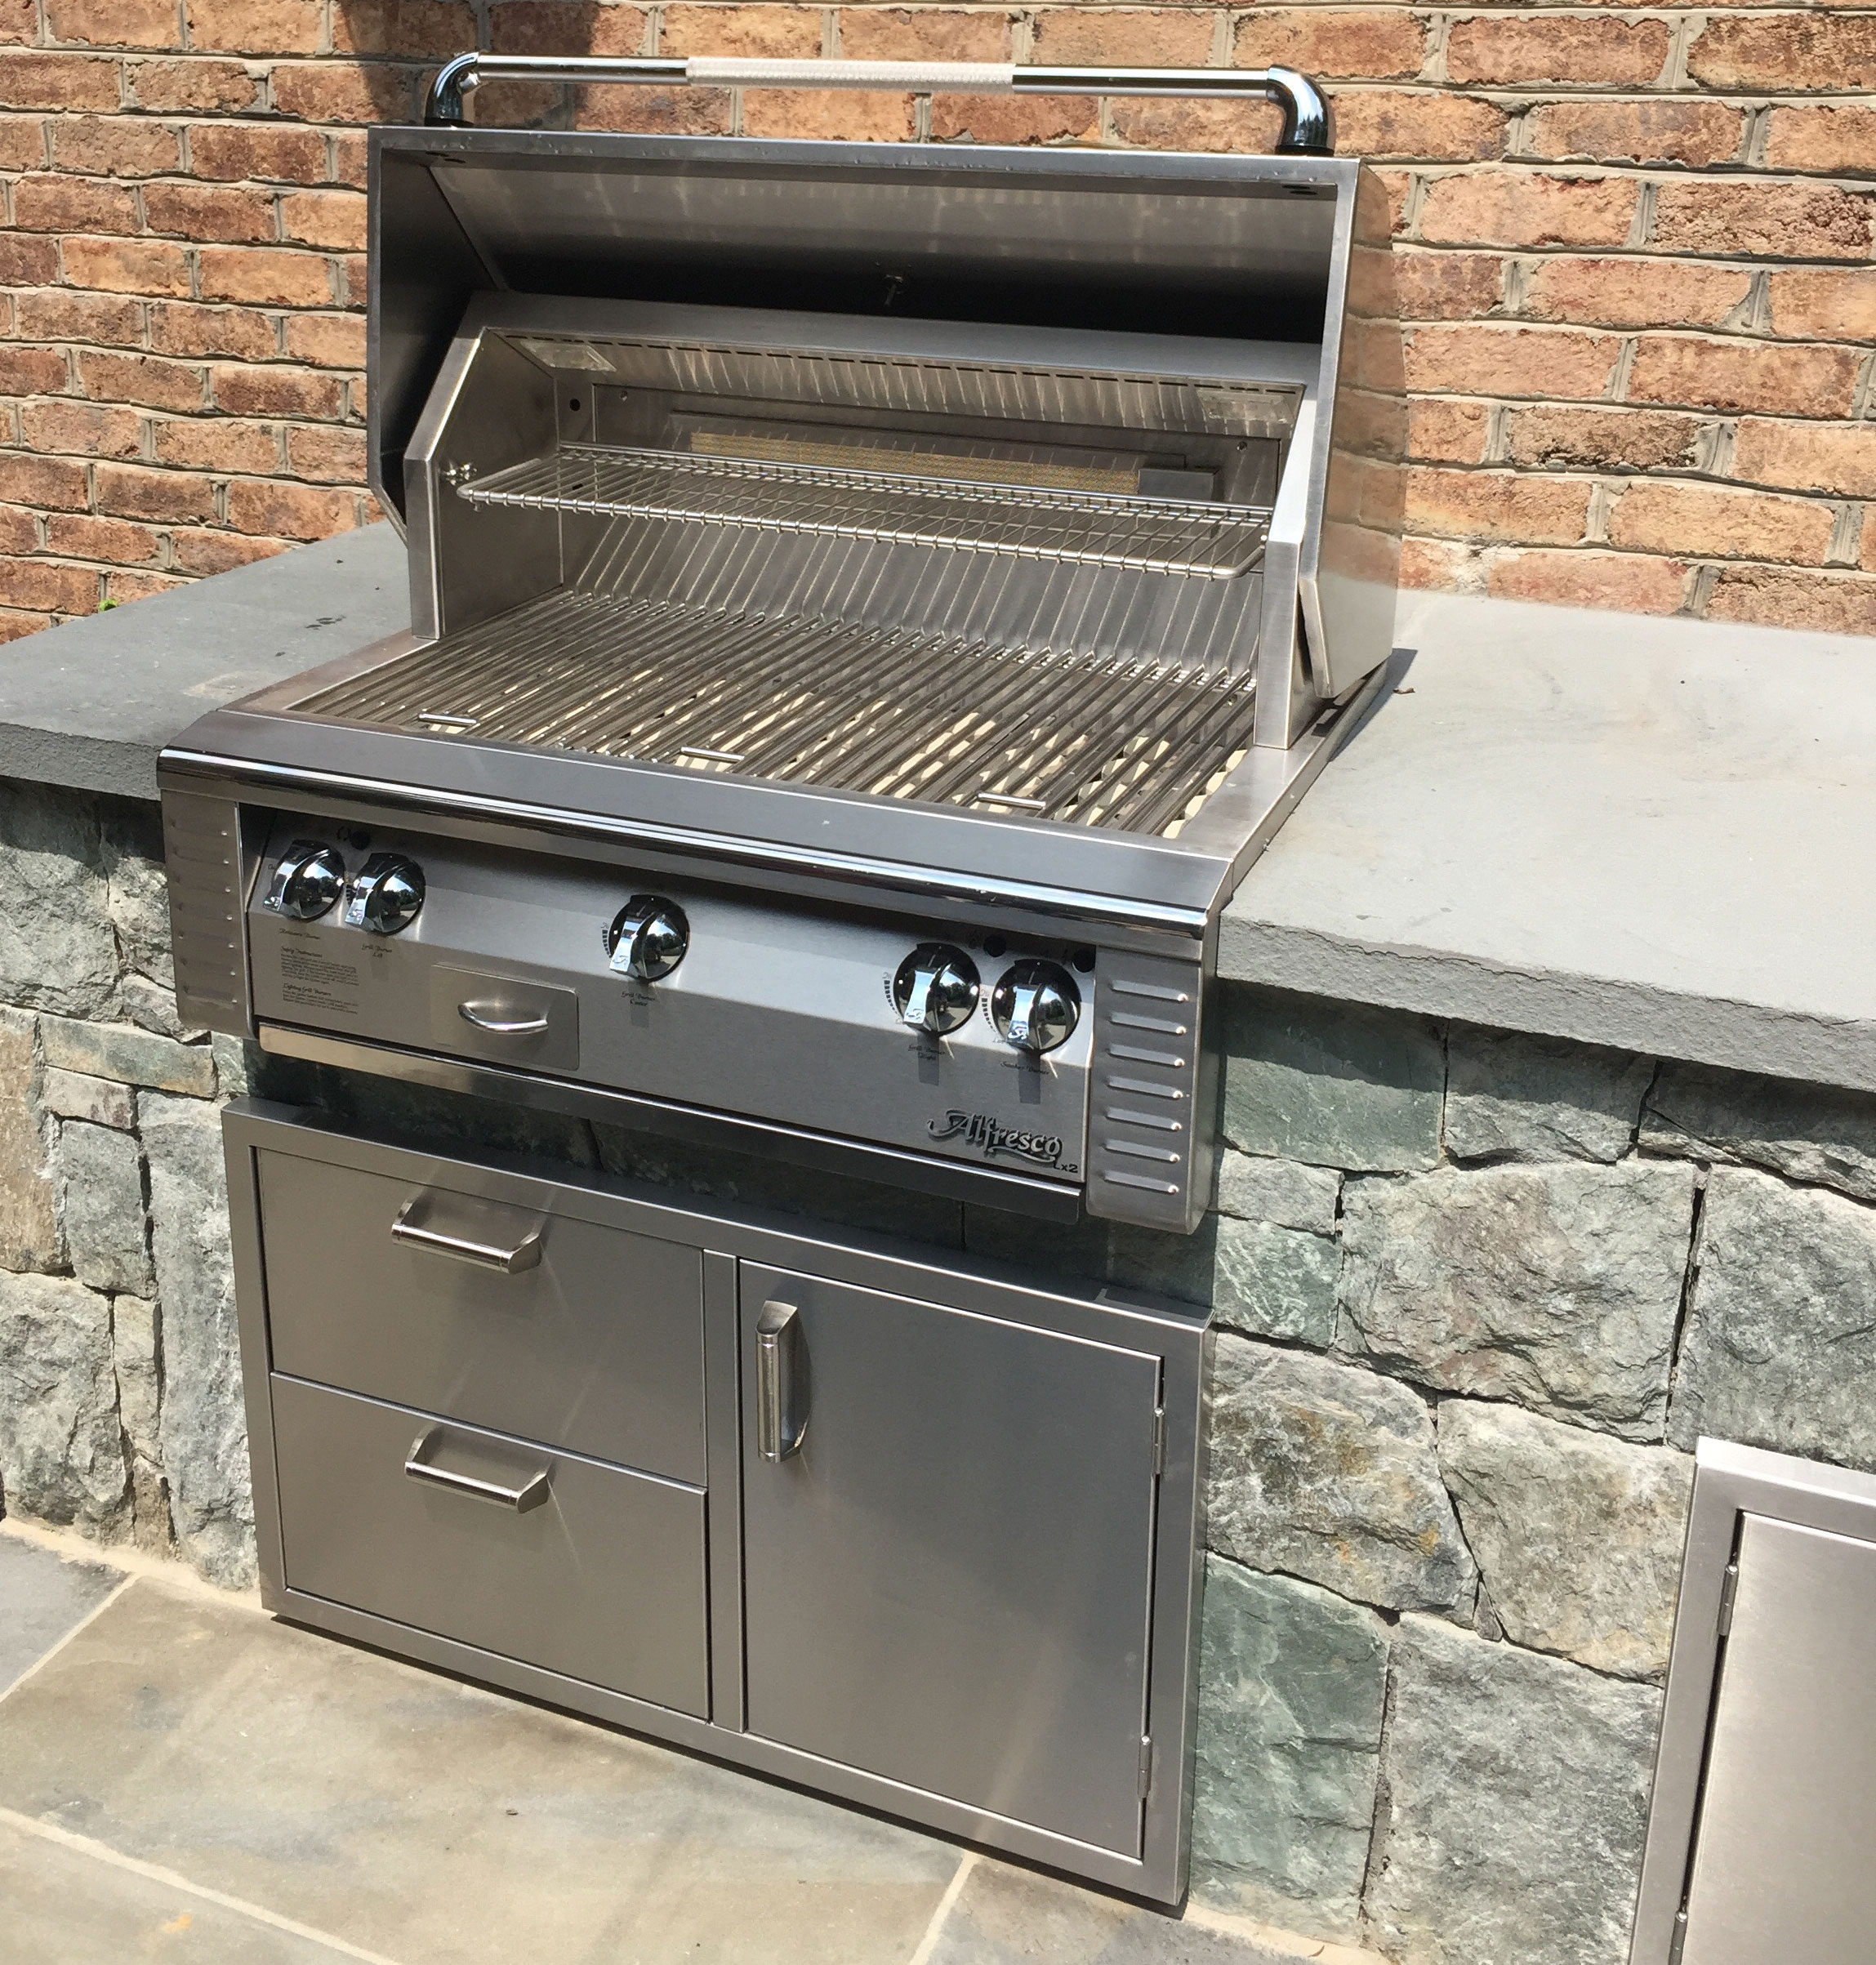 Alfresco Grill on Bluestone Countertop